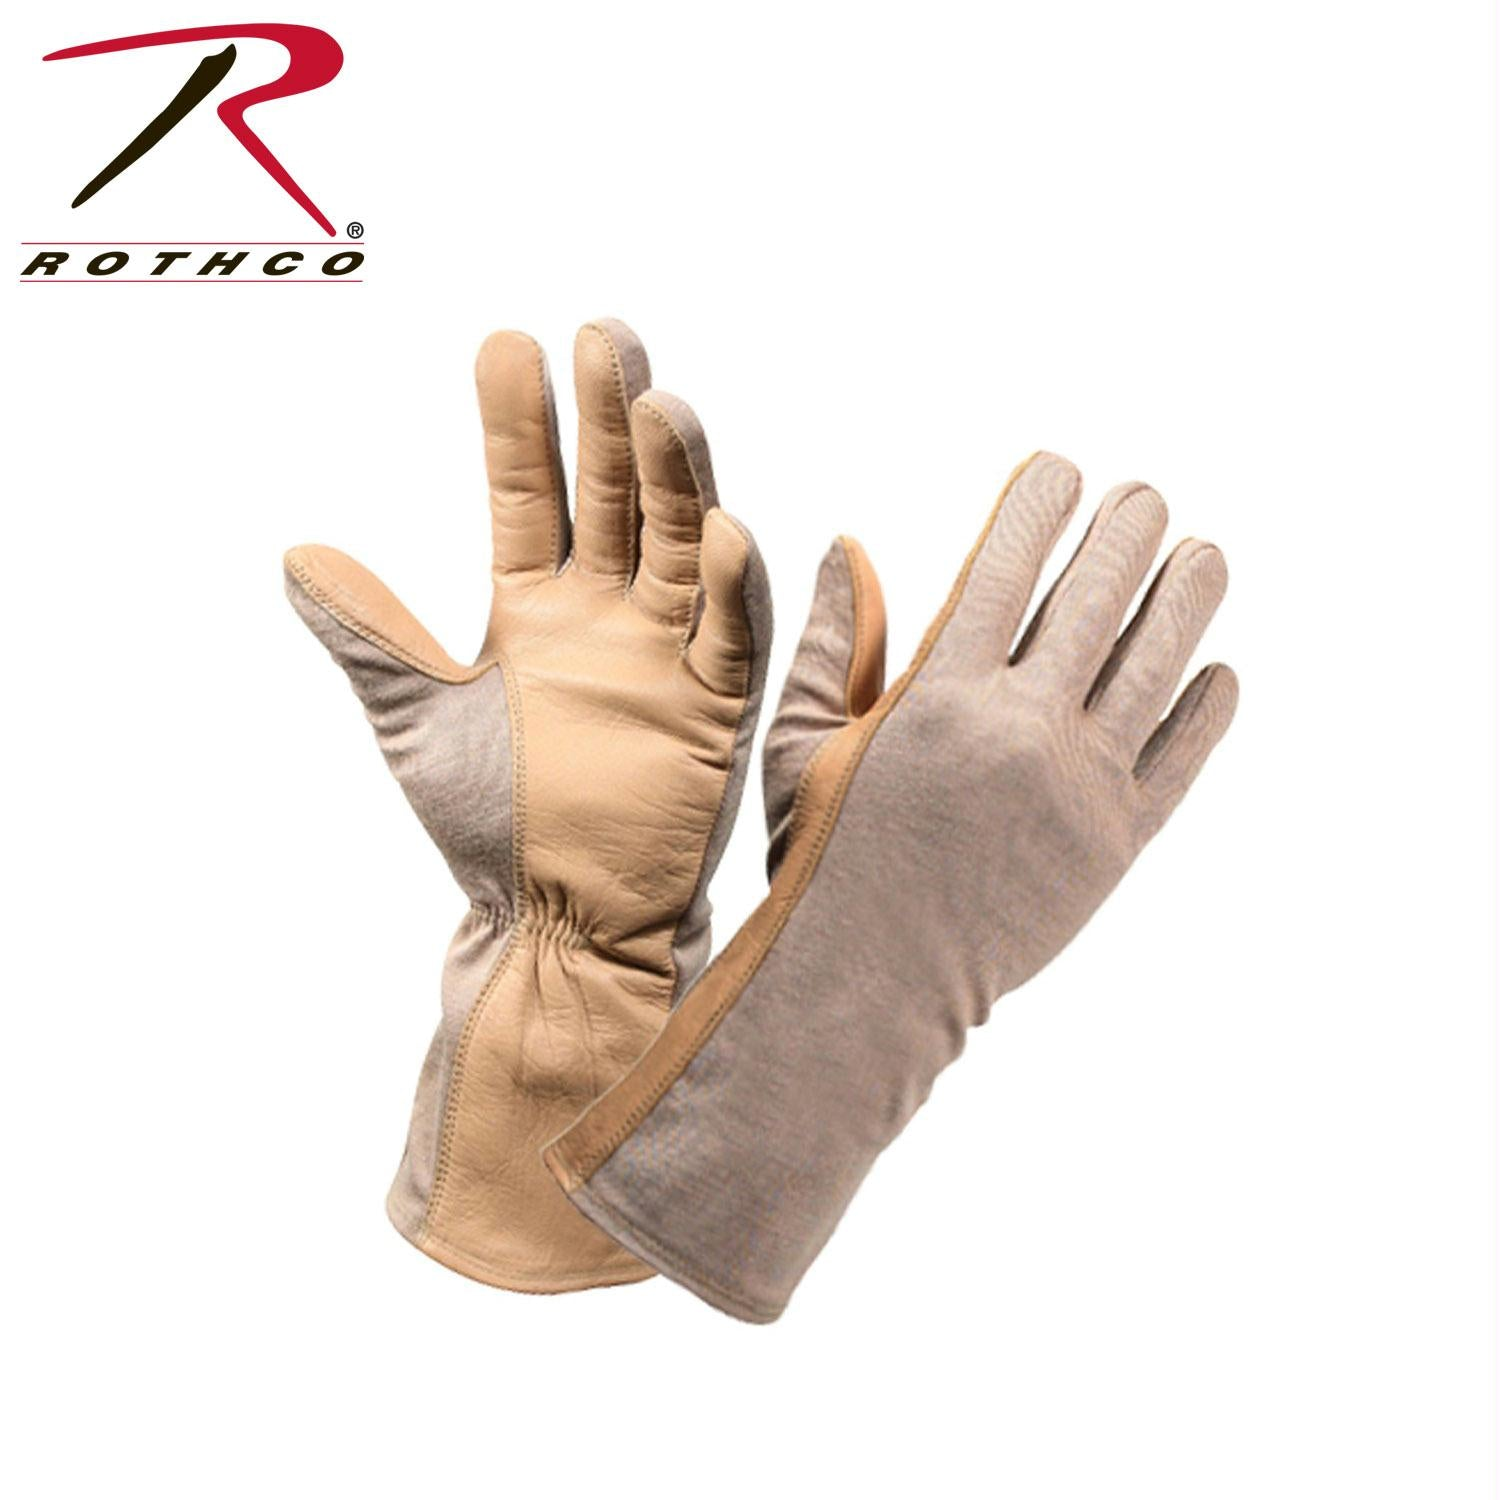 Rothco G.I. Type Flame & Heat Resistant Flight Gloves - Desert Sand / 8